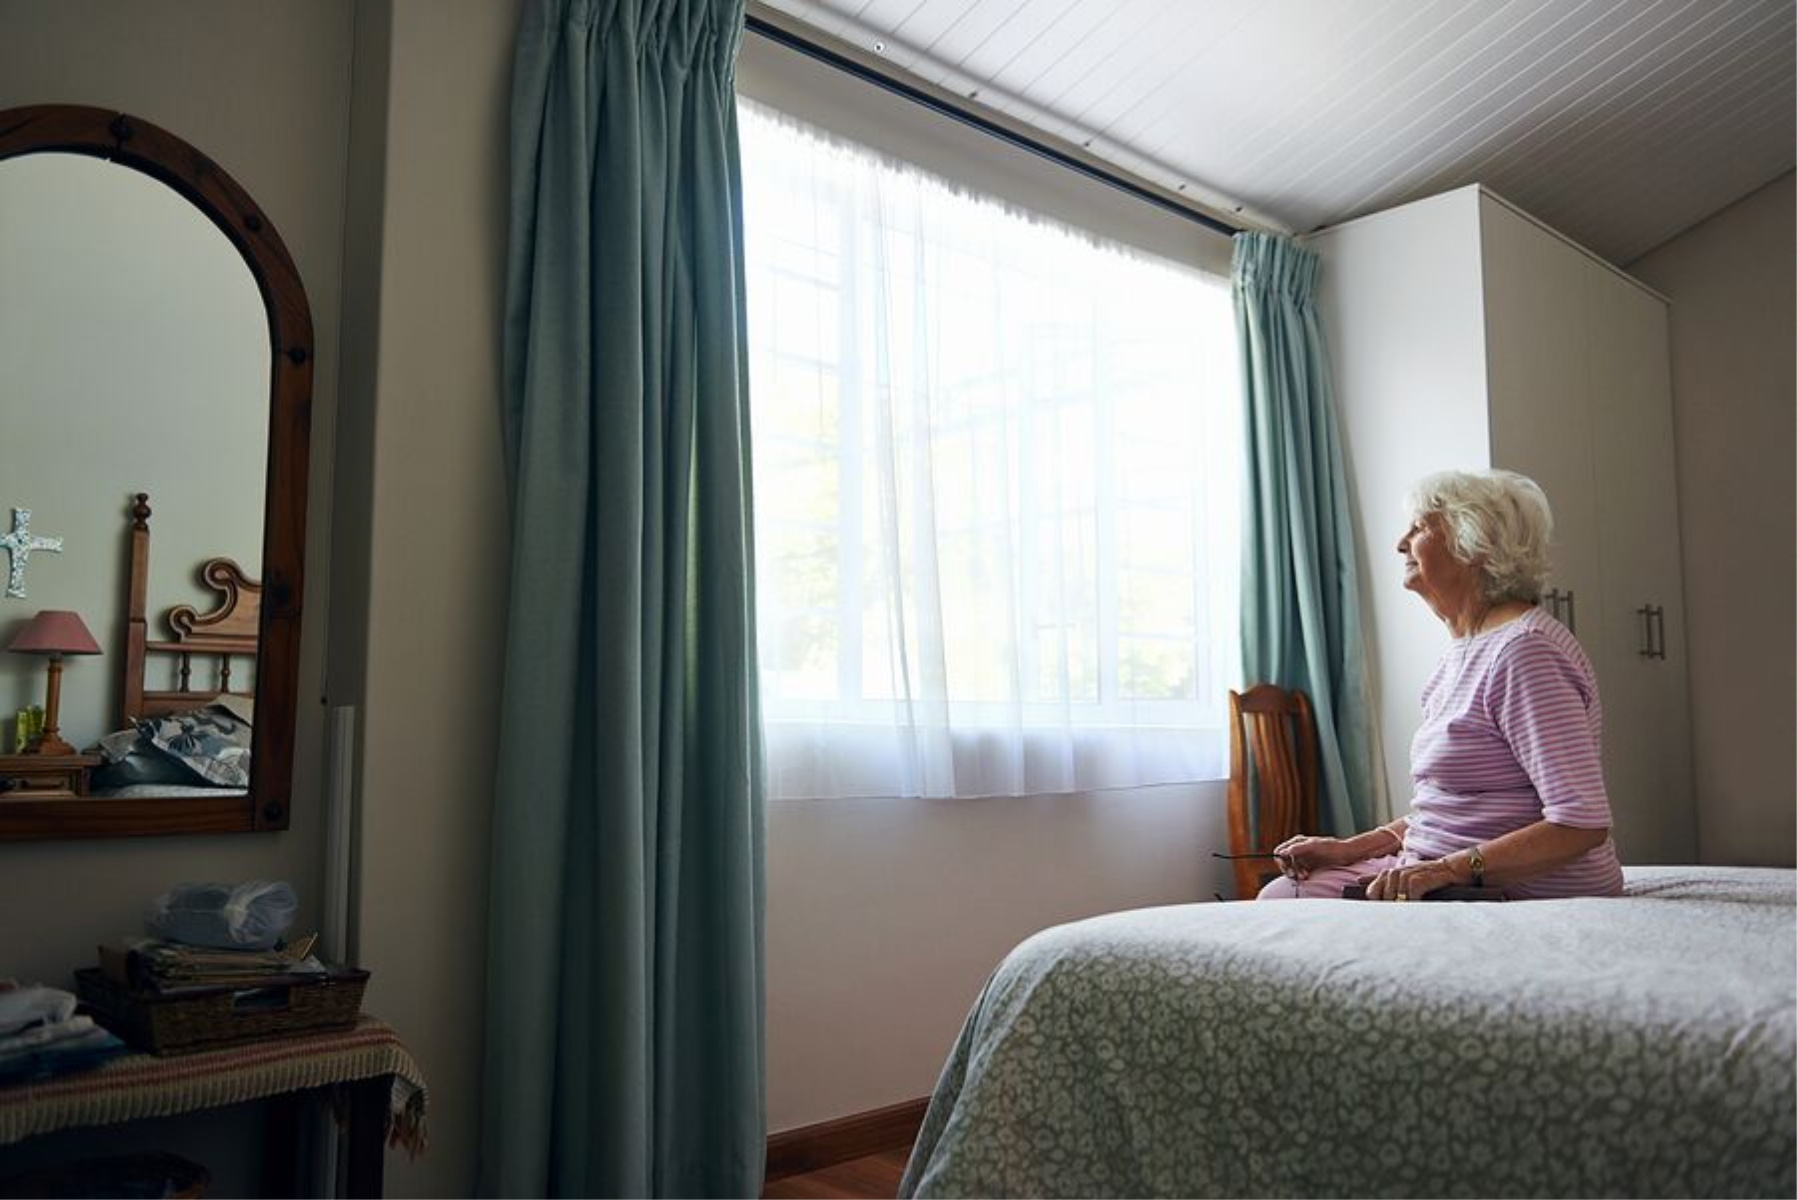 Senior Care in Dumont NJ: Protect Your Parents' Wishes